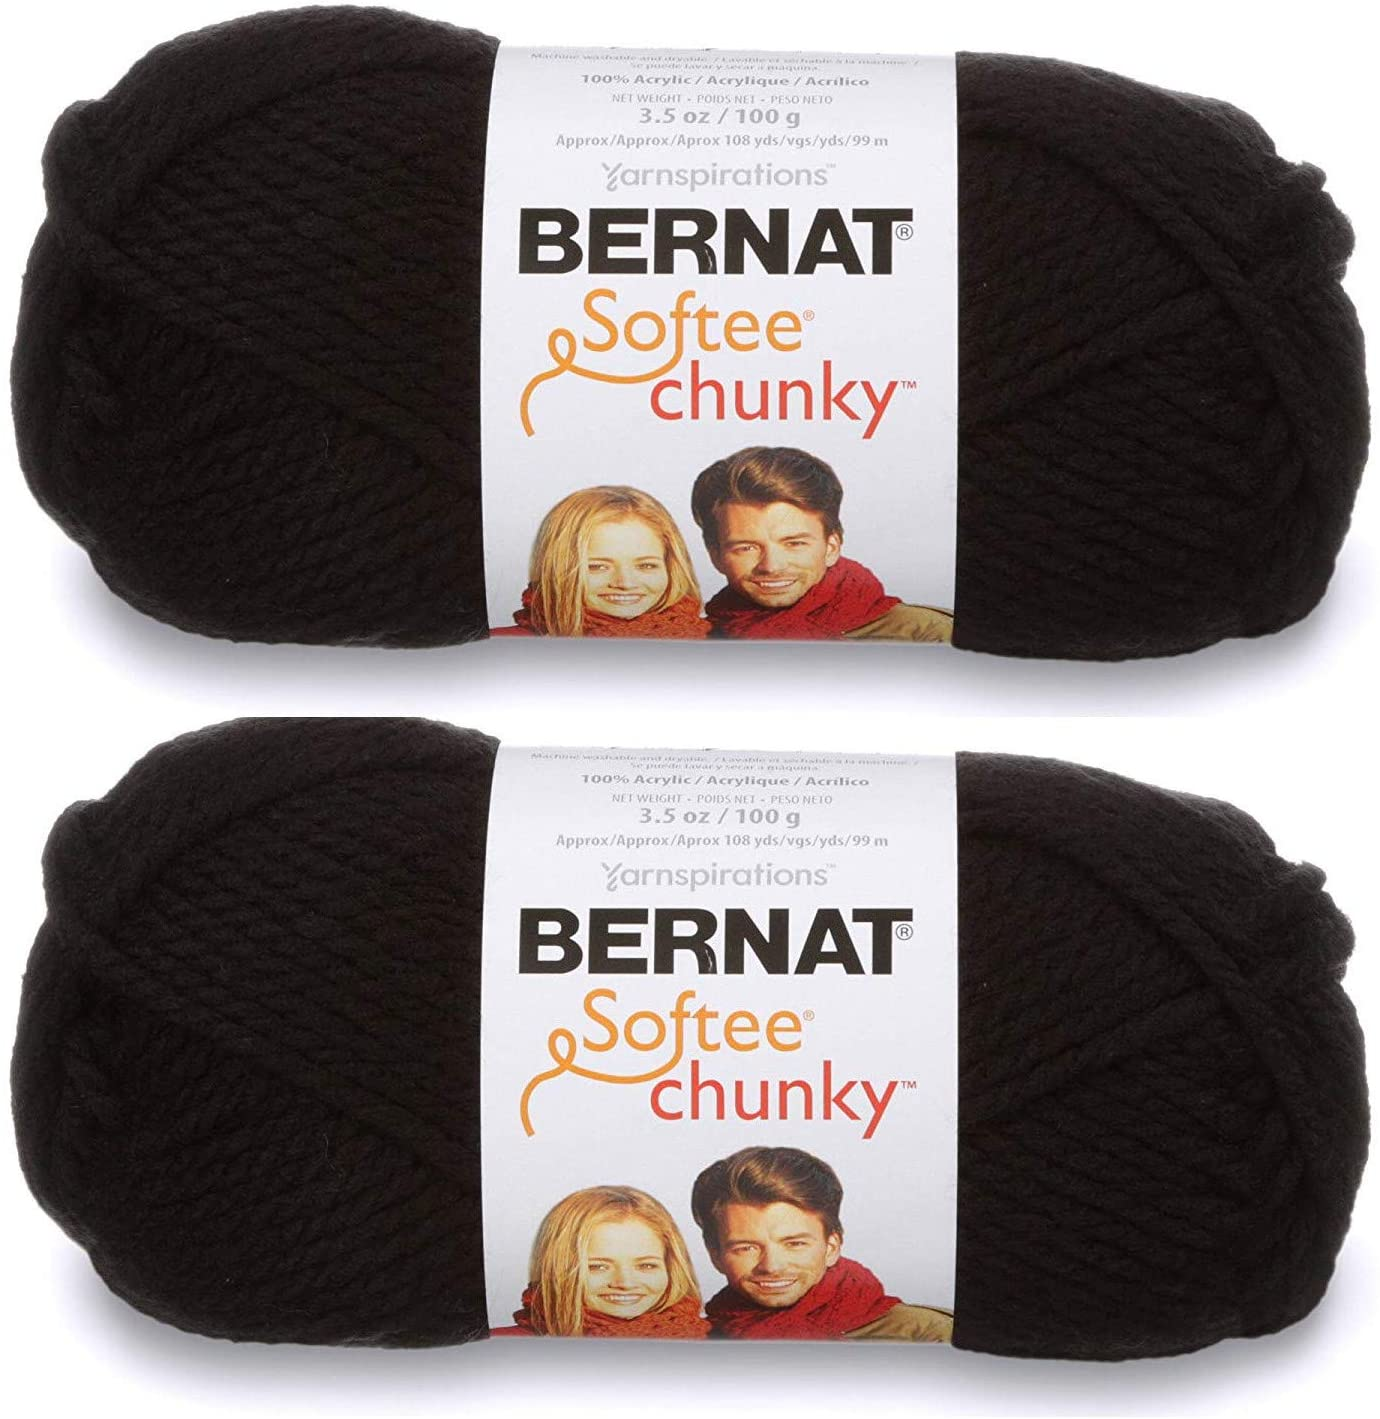 2-Pack - Bernat Softee Chunky Yarn, Black, Single Ball